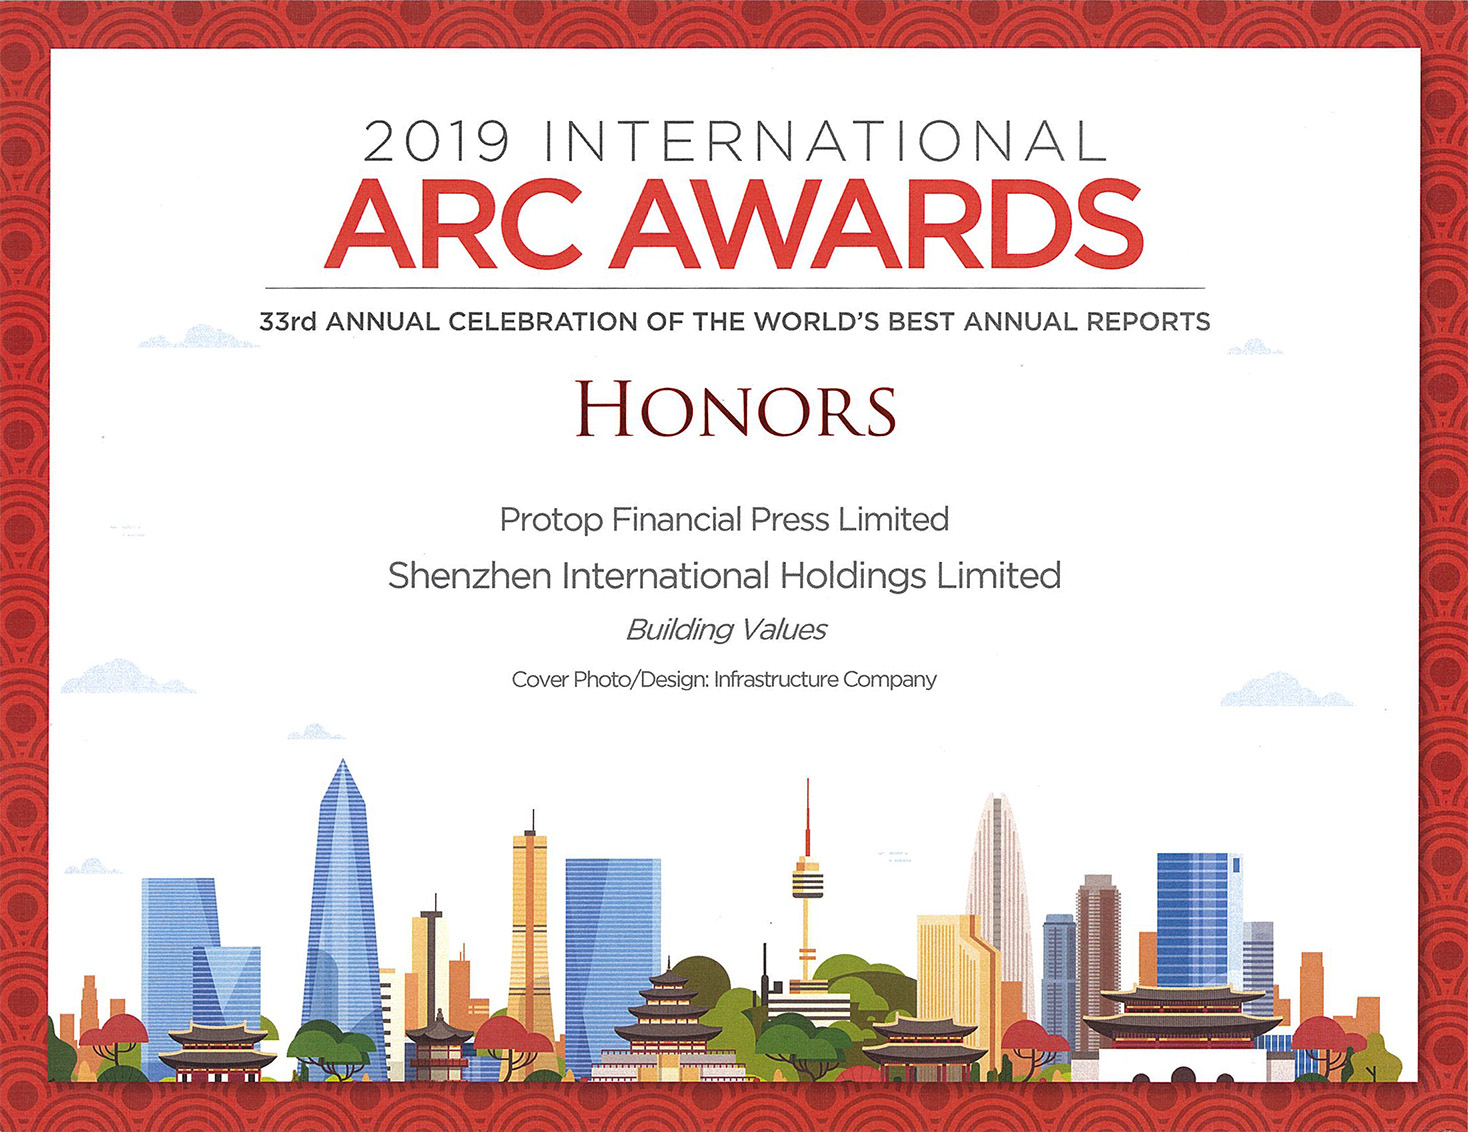 Shenzhen International Holdings Limited – 2019 ARC AWARDS HONORS Cover Photo/Design: Infrastructure Company